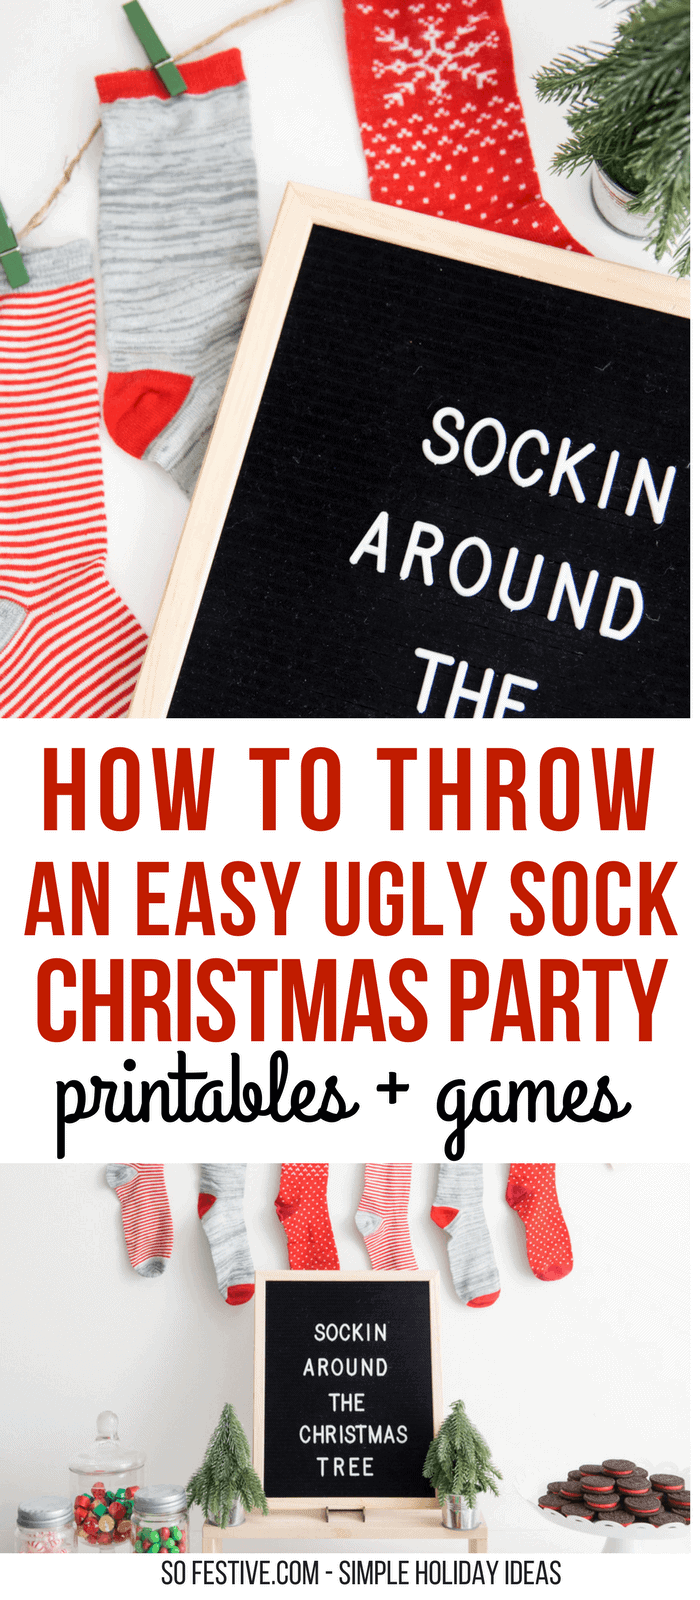 Tacky Christmas Sock Party Ugly Sweater Party Alternative So